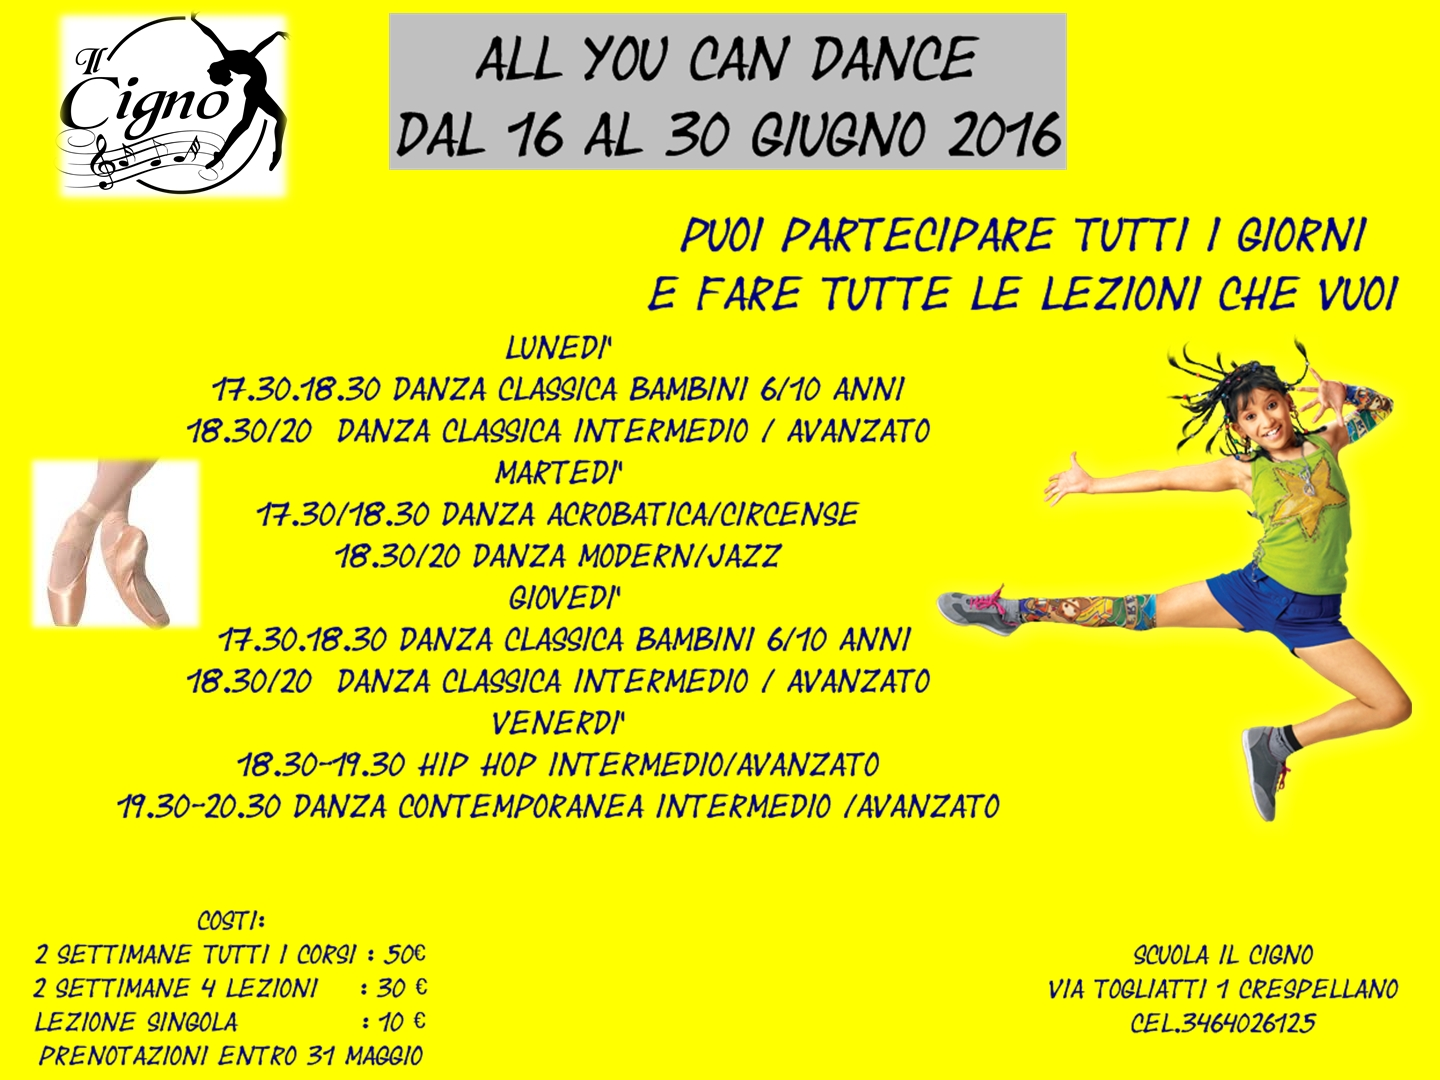 ALL YOU CAN DANCE 20161